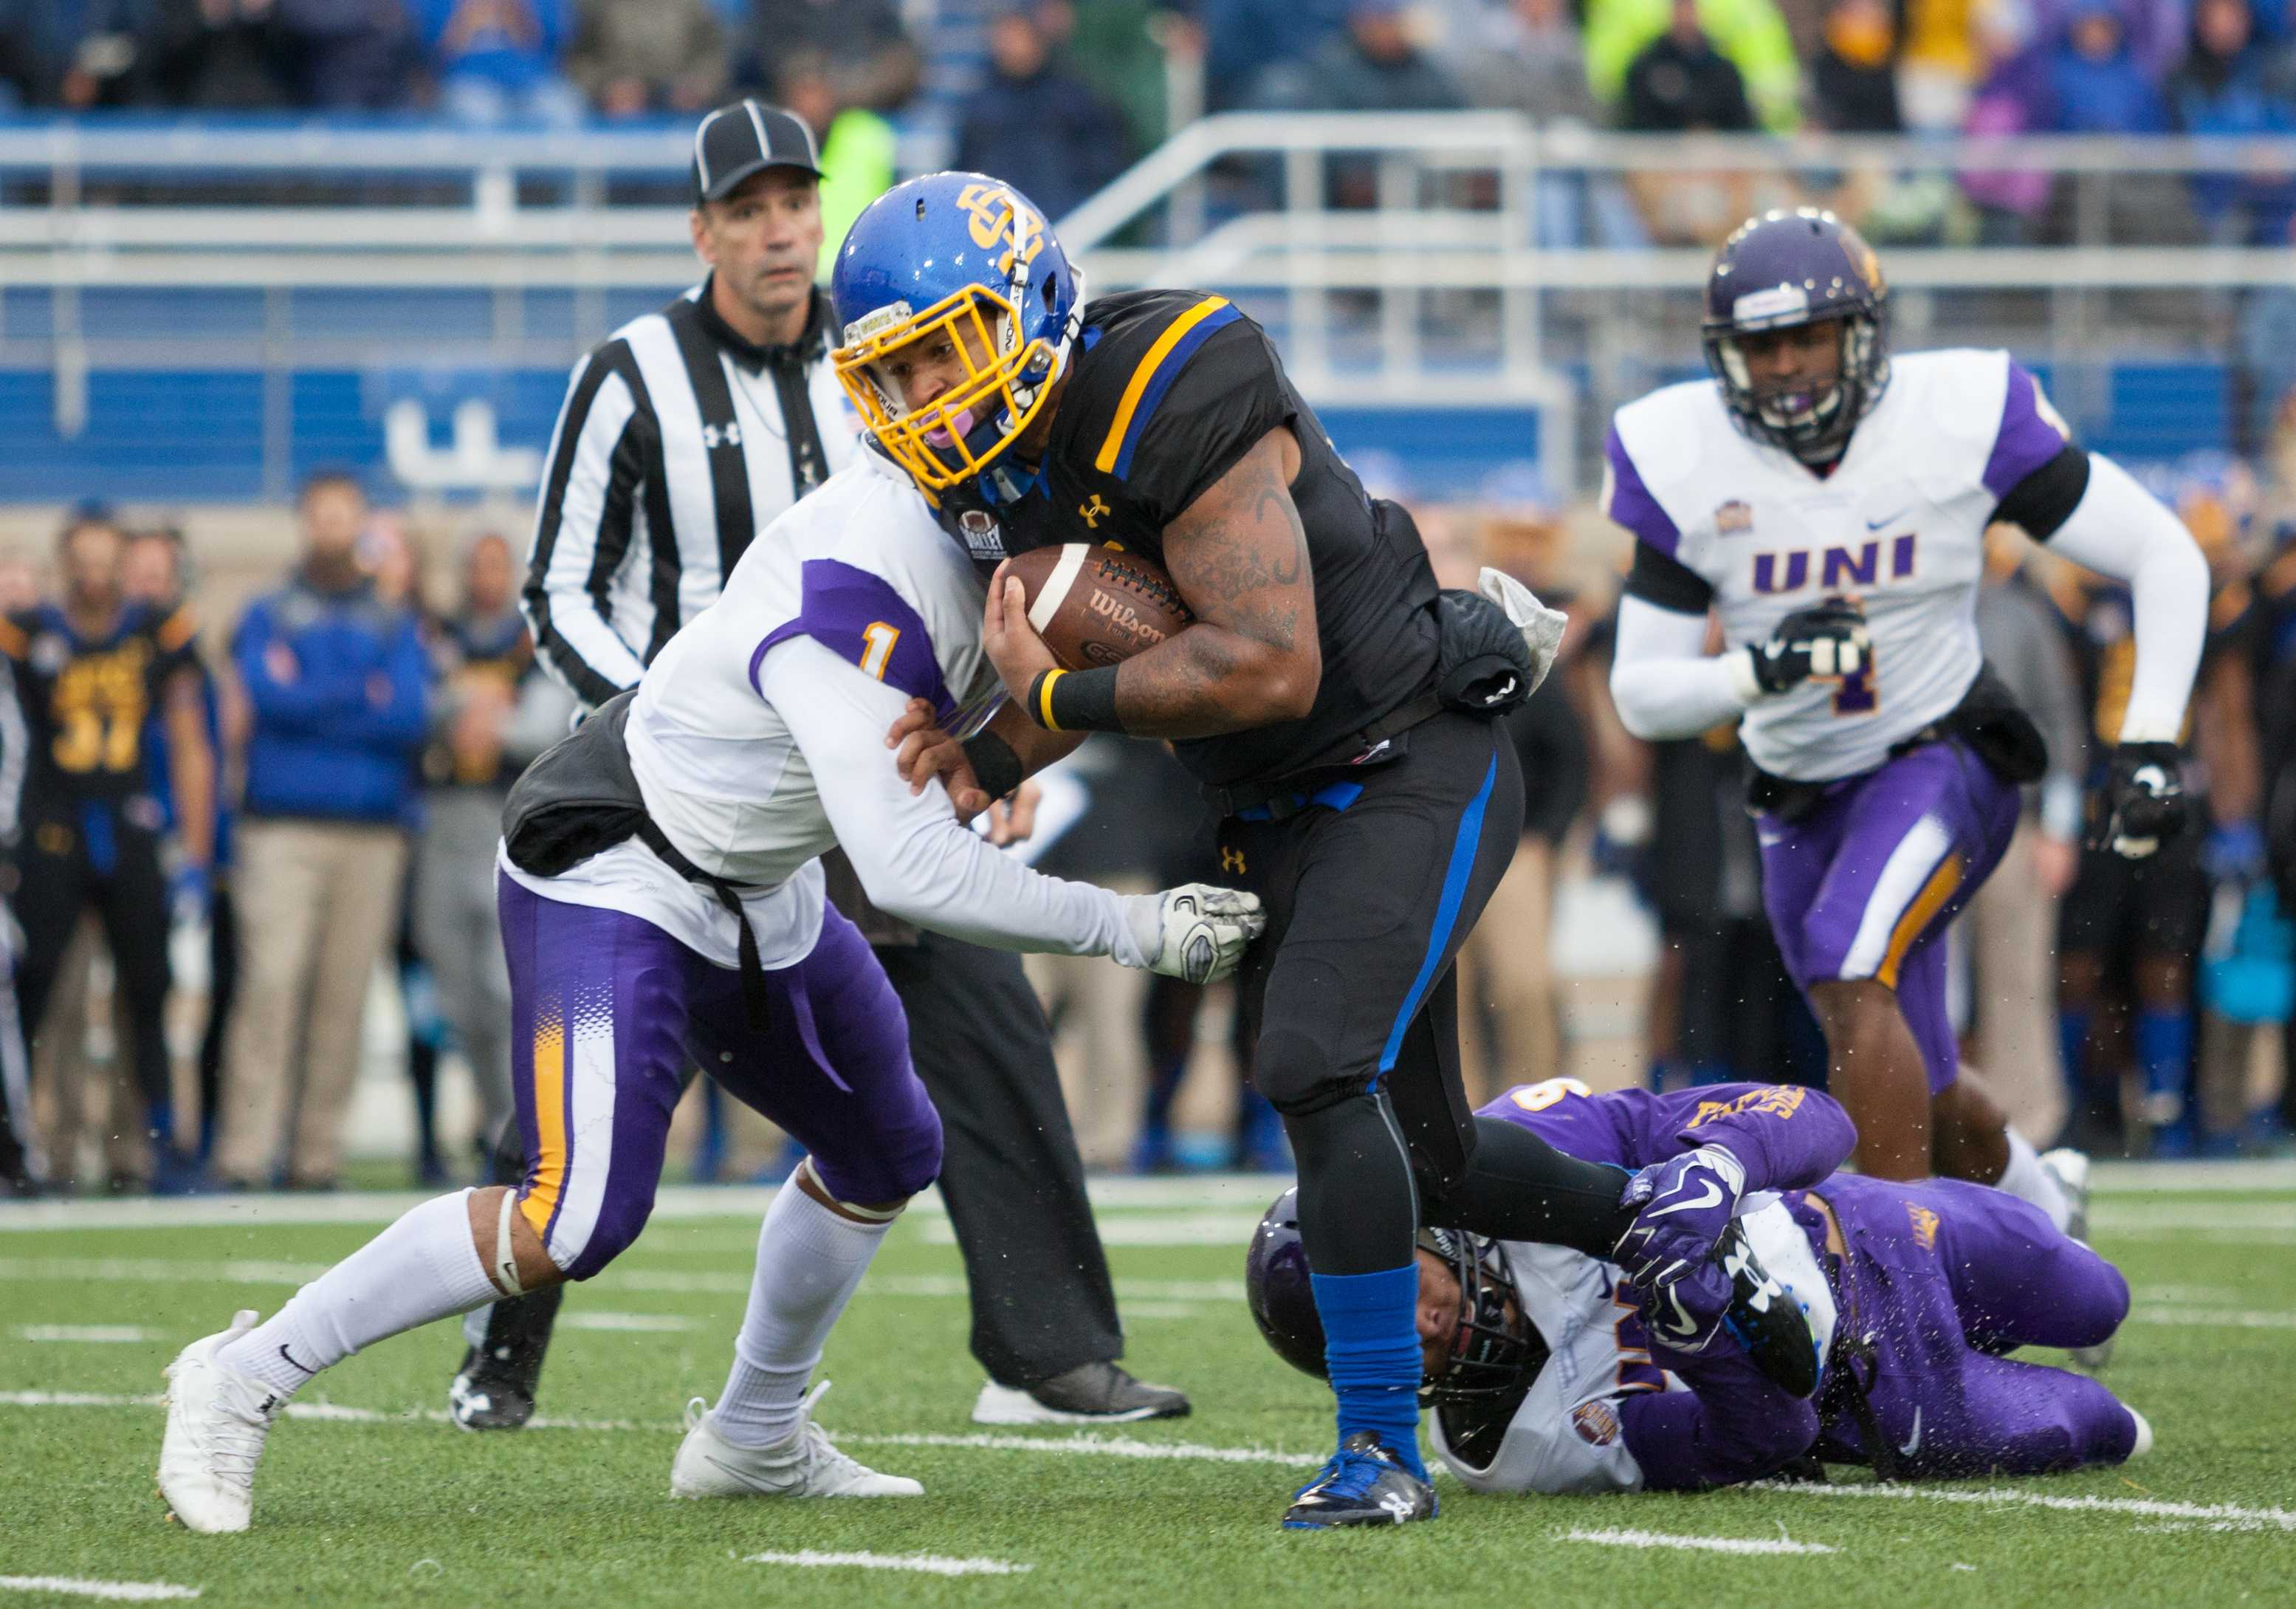 THIEN NGUYEN Sophomore Mikey Daniel (26) rushes 21 yards for a first down against Northern Iowa Oct. 14. The Jacks travel to Springfield, Missouri to face the Missouri State Bears on Saturday.